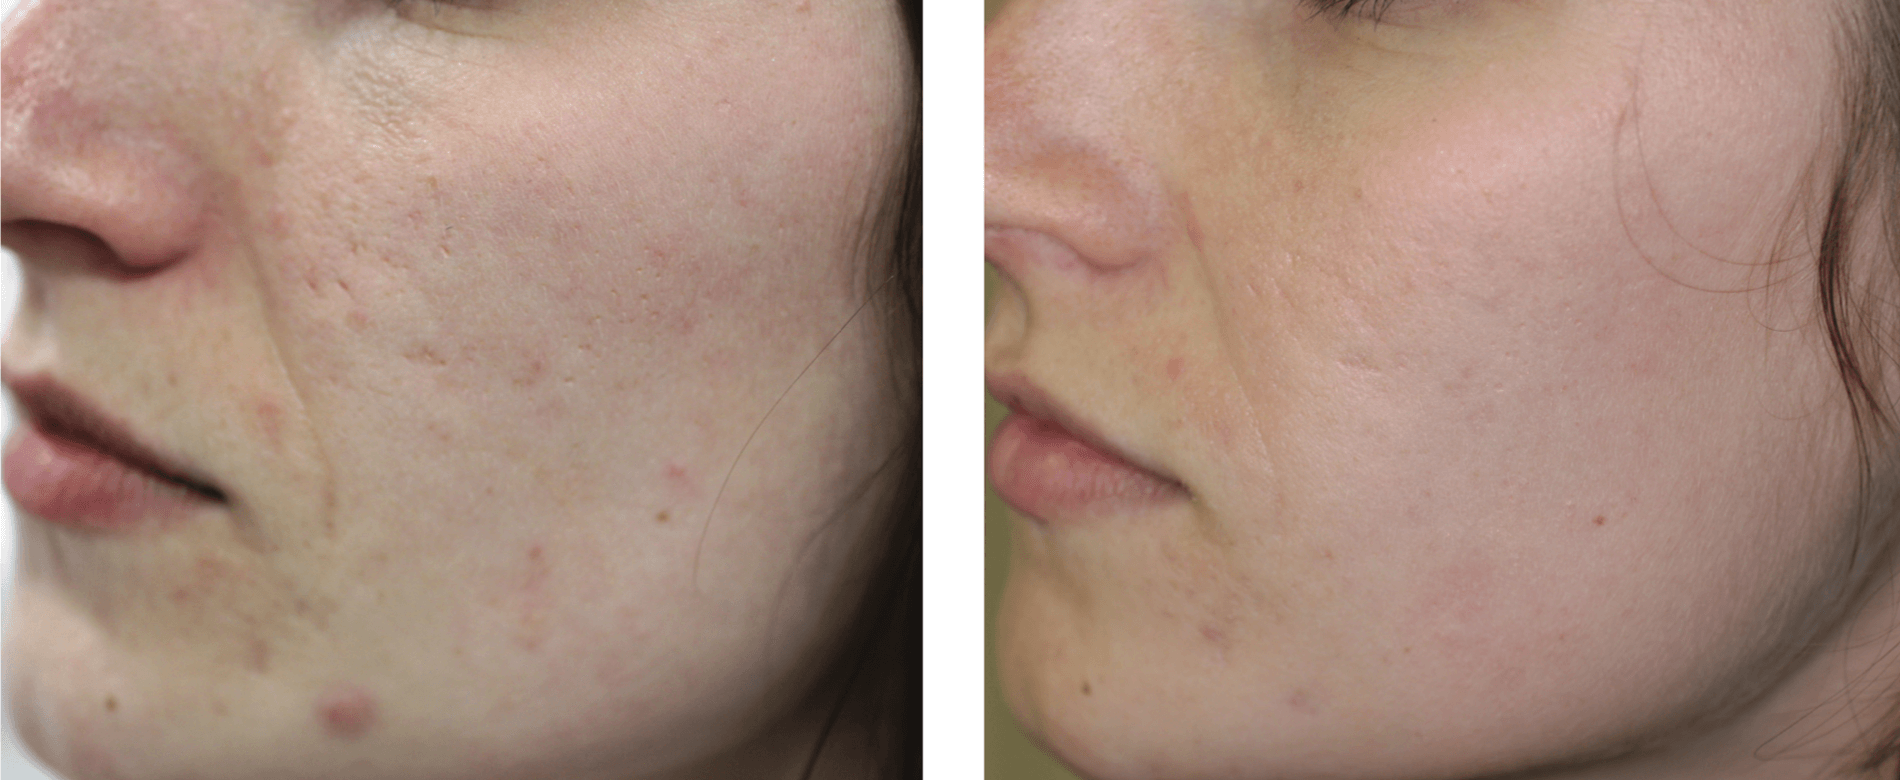 2 weeks Post 3 treatments - Results may vary from person to person.